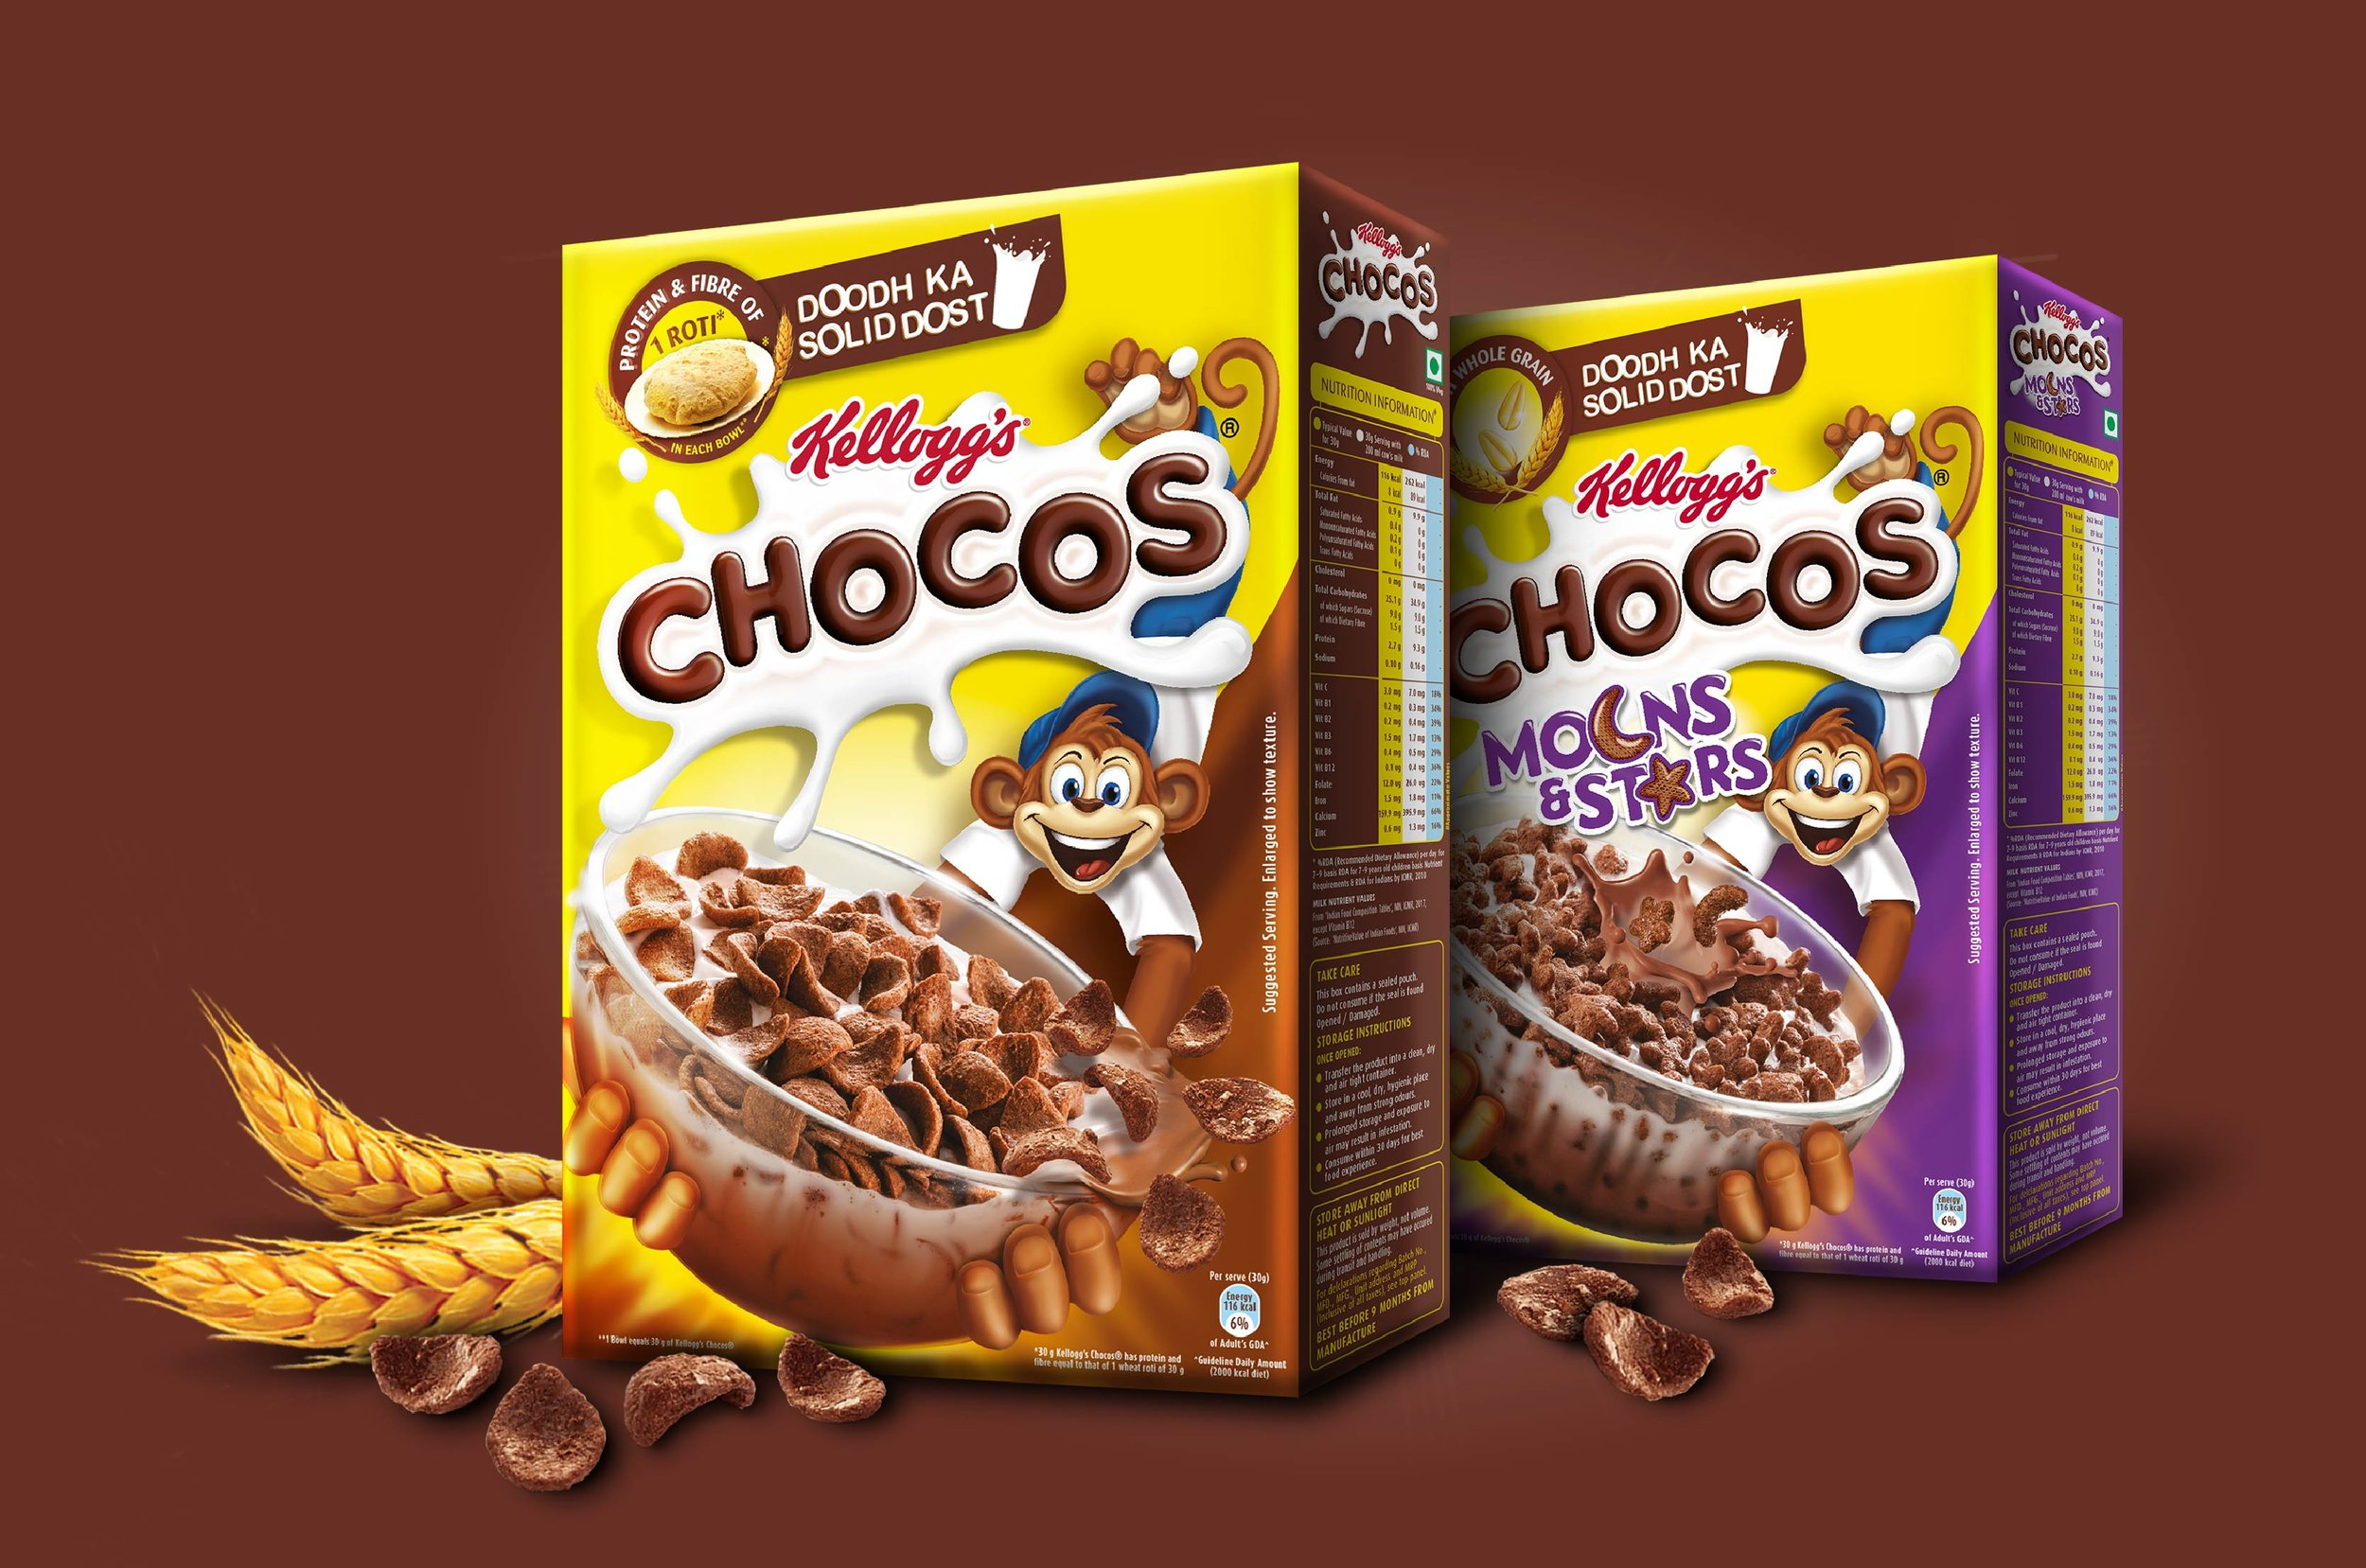 Kellogg's Chocos_Packaging_Elephant Design 1.jpg